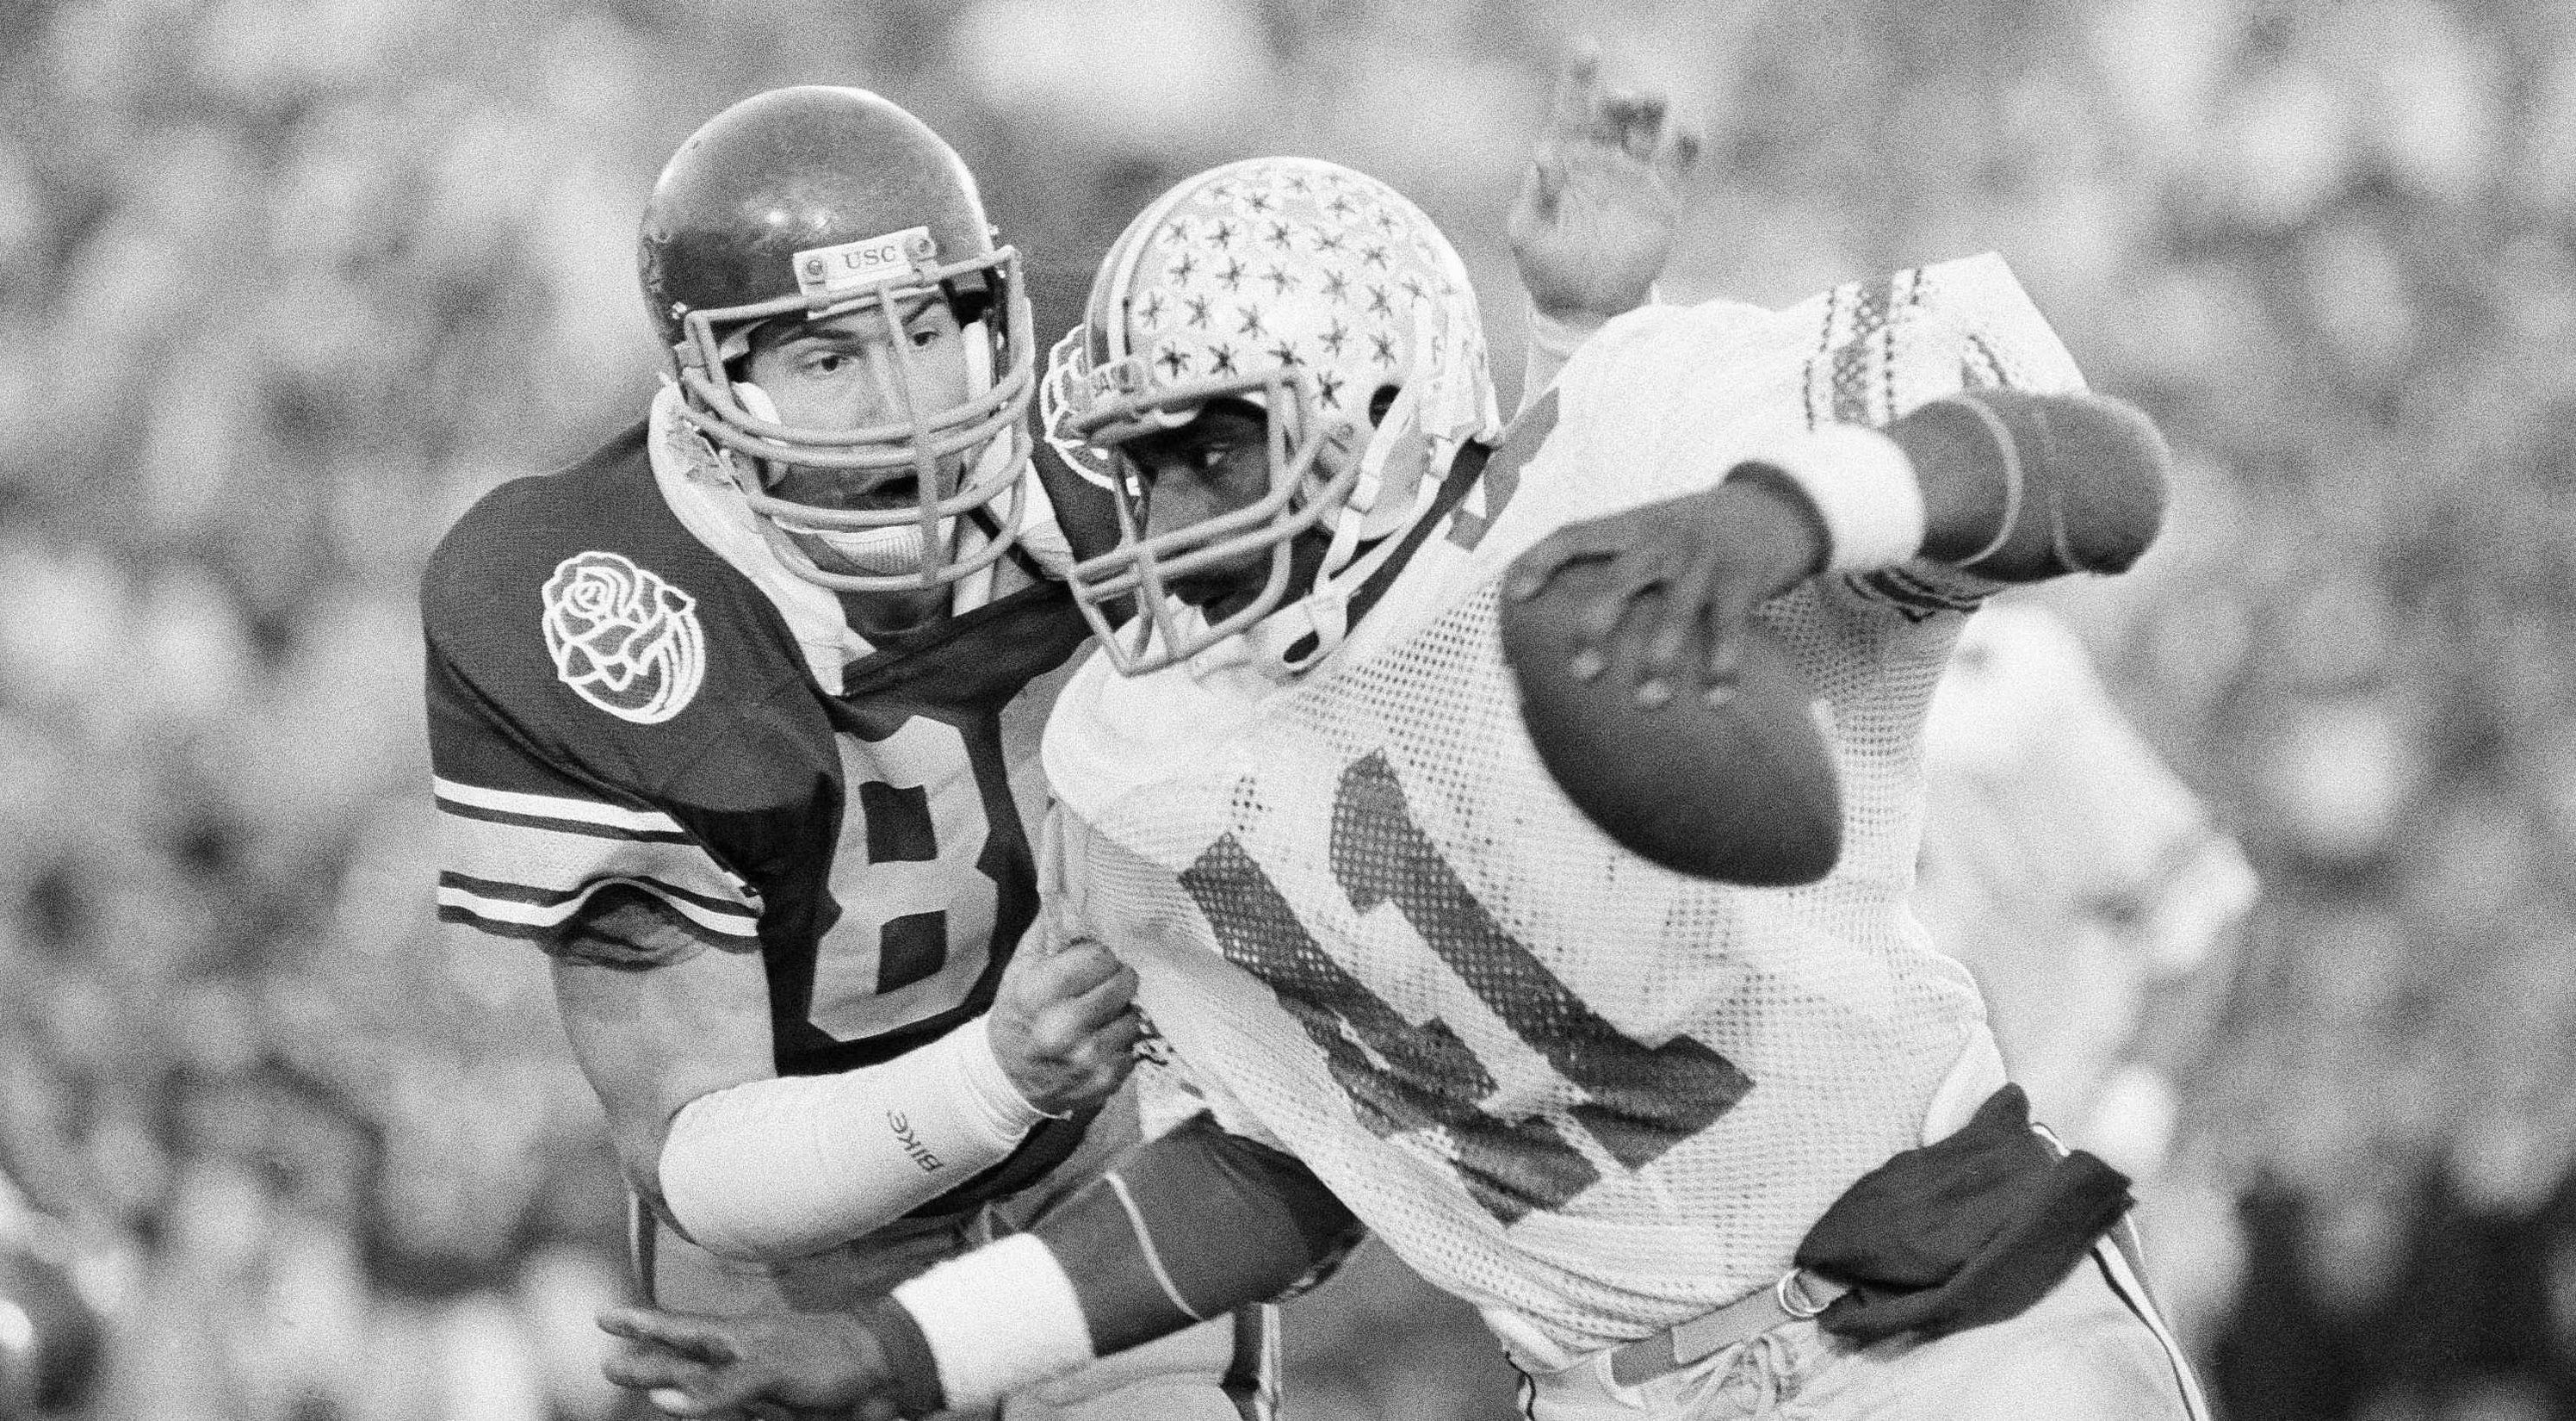 Ohio State tailback Keith Byars getting tackled by USC linebacker Duane Bickett (80) during the Rose Bowl in January 1985.